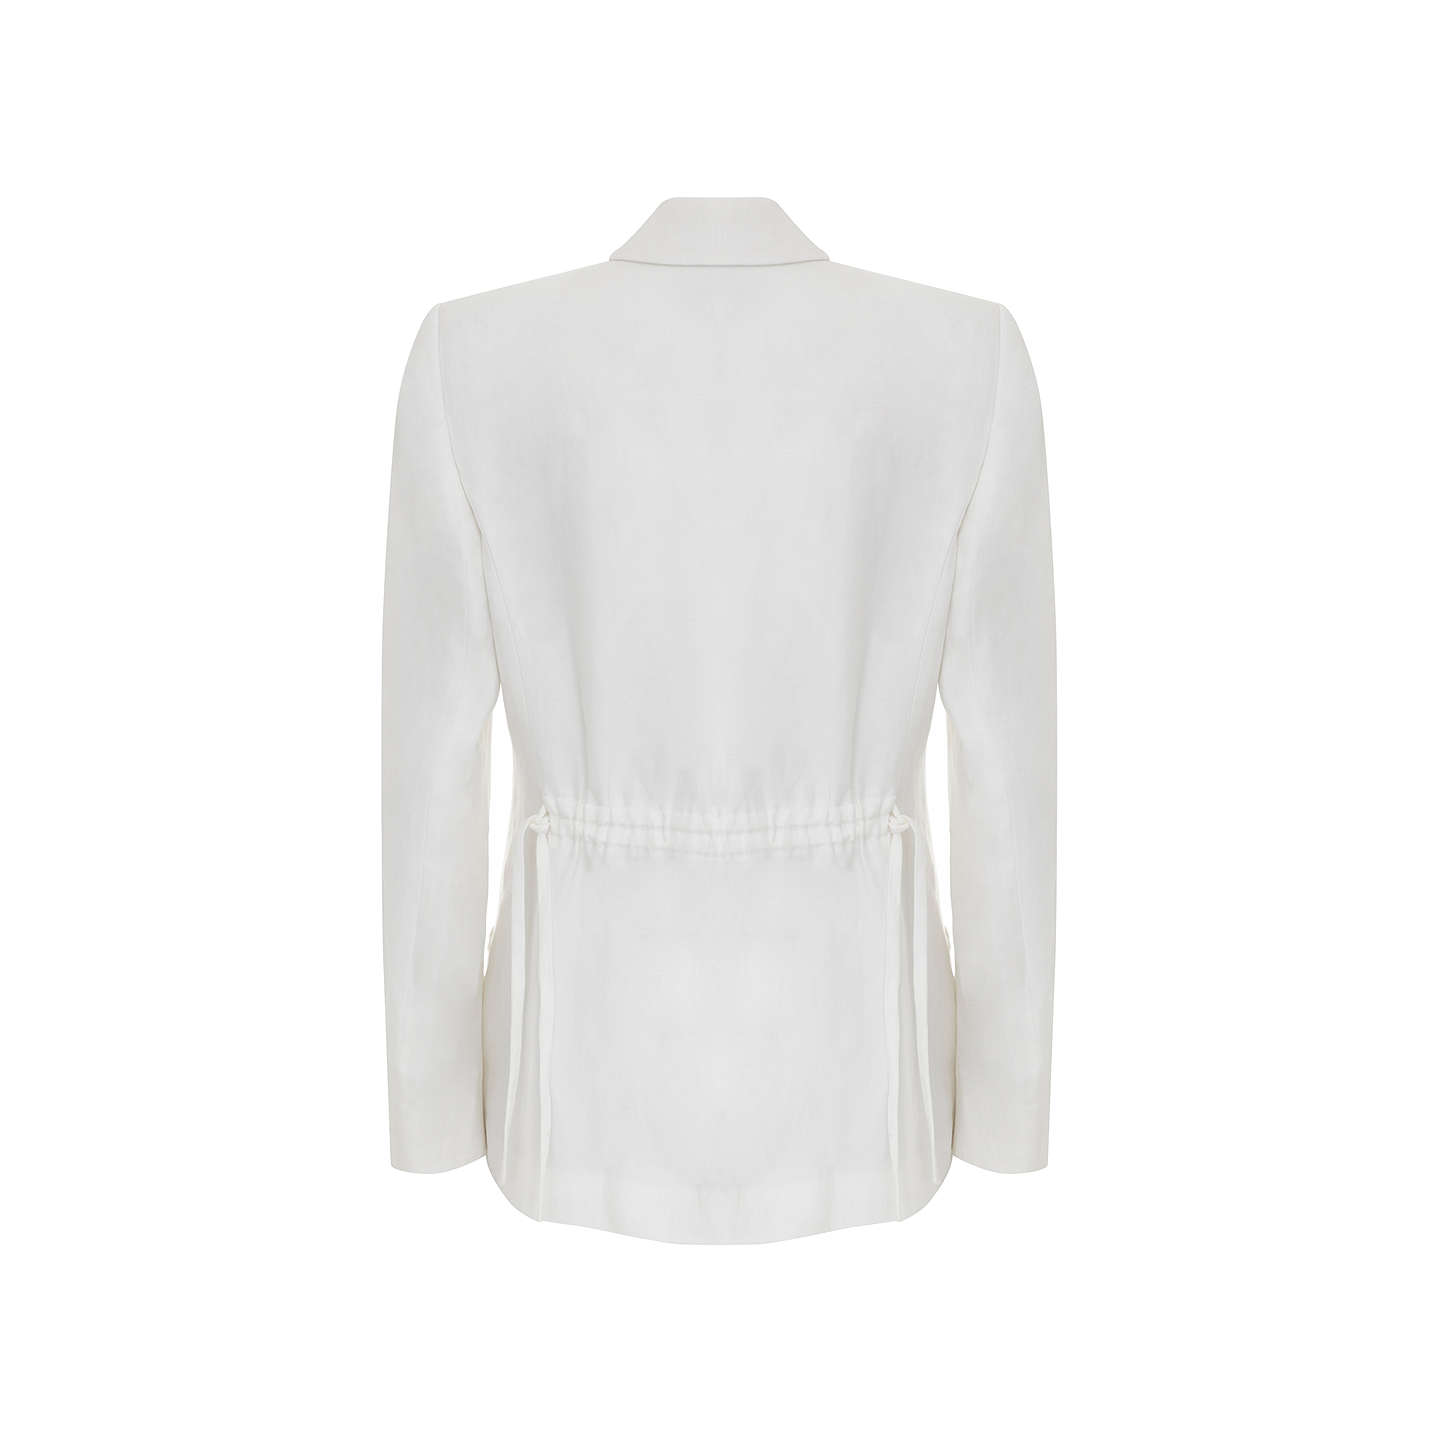 BuyMint Velvet Boyfriend Blazer, Cream, 6 Online at johnlewis.com